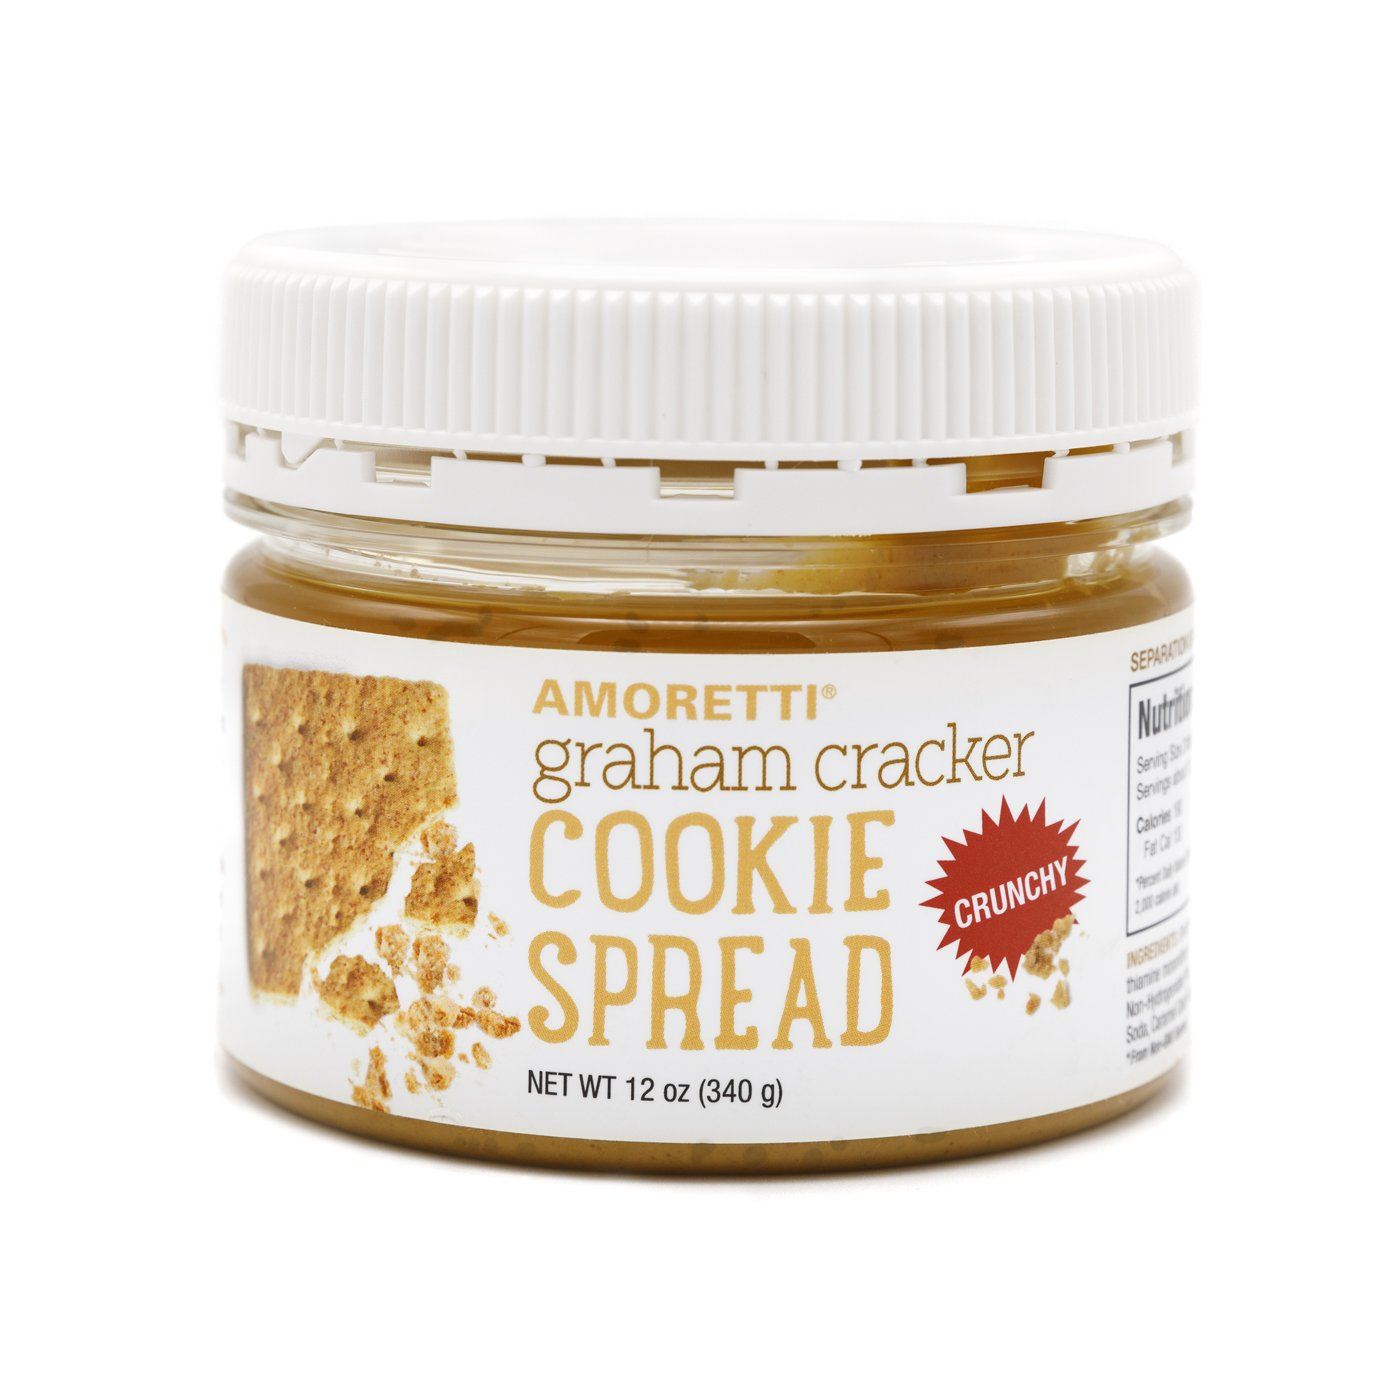 Graham Cracker Crunchy Cookie Spread